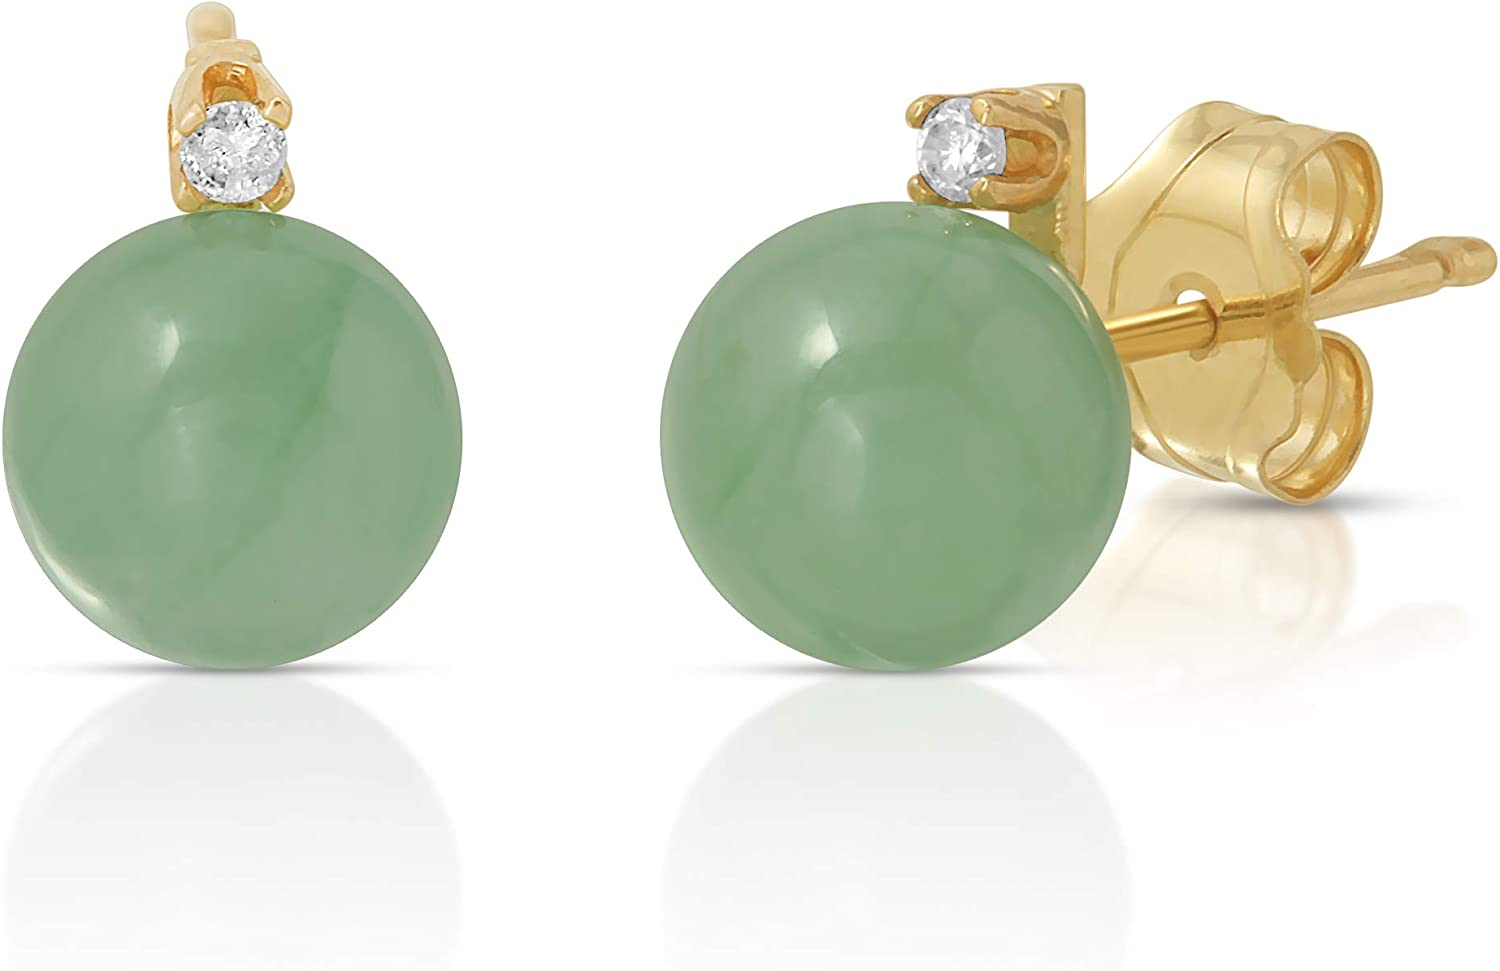 Regalia by Ulti Ramos 14K Gold Real Jade 2pcs Earring and Pendant Set with .03cts of White Diamonds 17